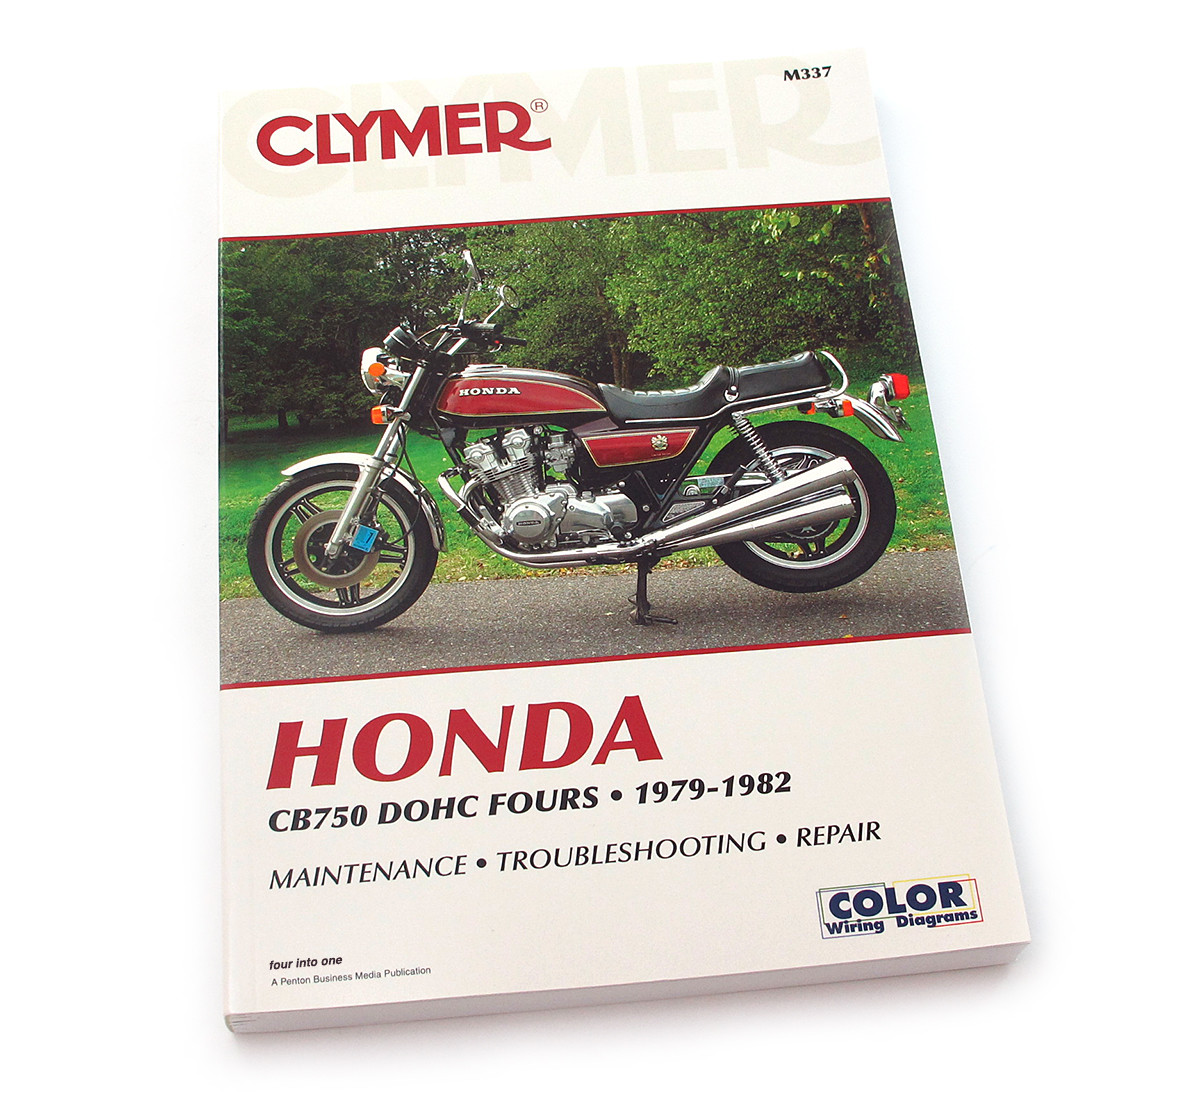 hight resolution of clymer manual honda cb750 dohc fours 1979 1982 1980 cb750 wiring diagram image 1